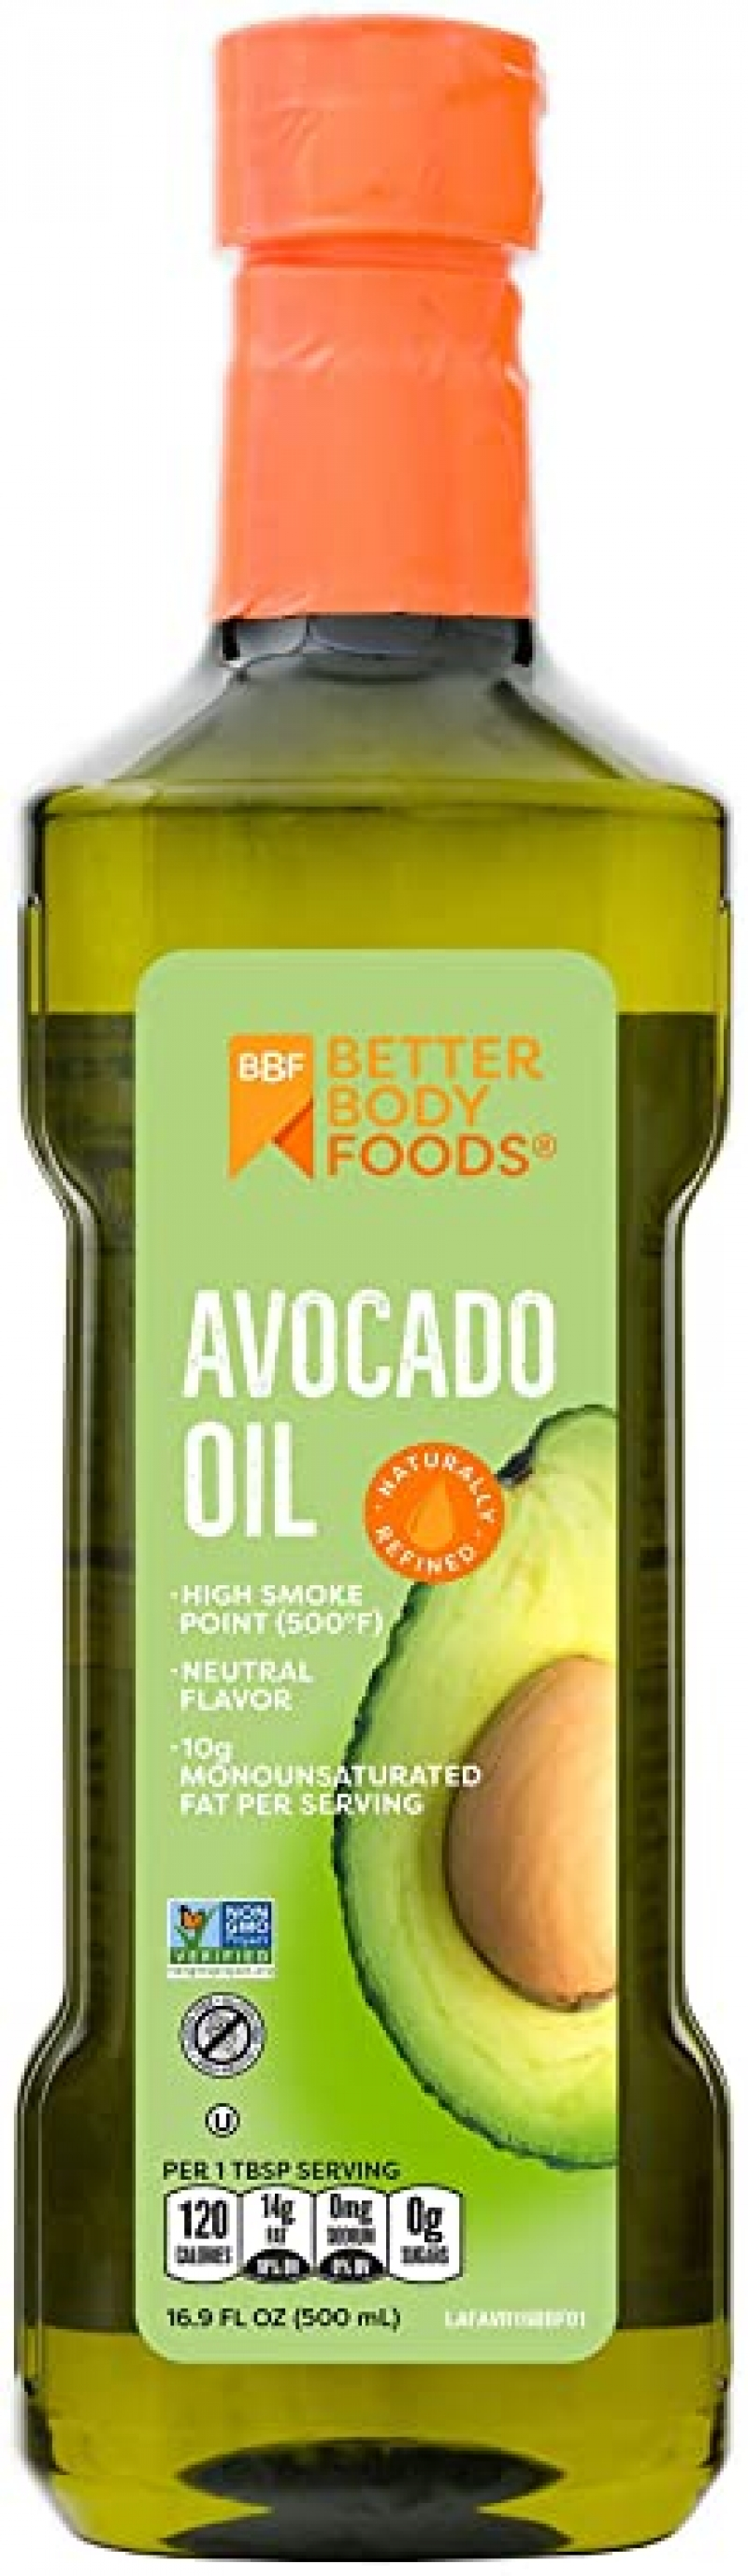 ihocon: BetterBody Foods Avocado Oil, Refined Non-GMO Cooking Oil for Paleo and Keto, 500 Milliliters  酪梨油16.9 FL OZ (500ml)